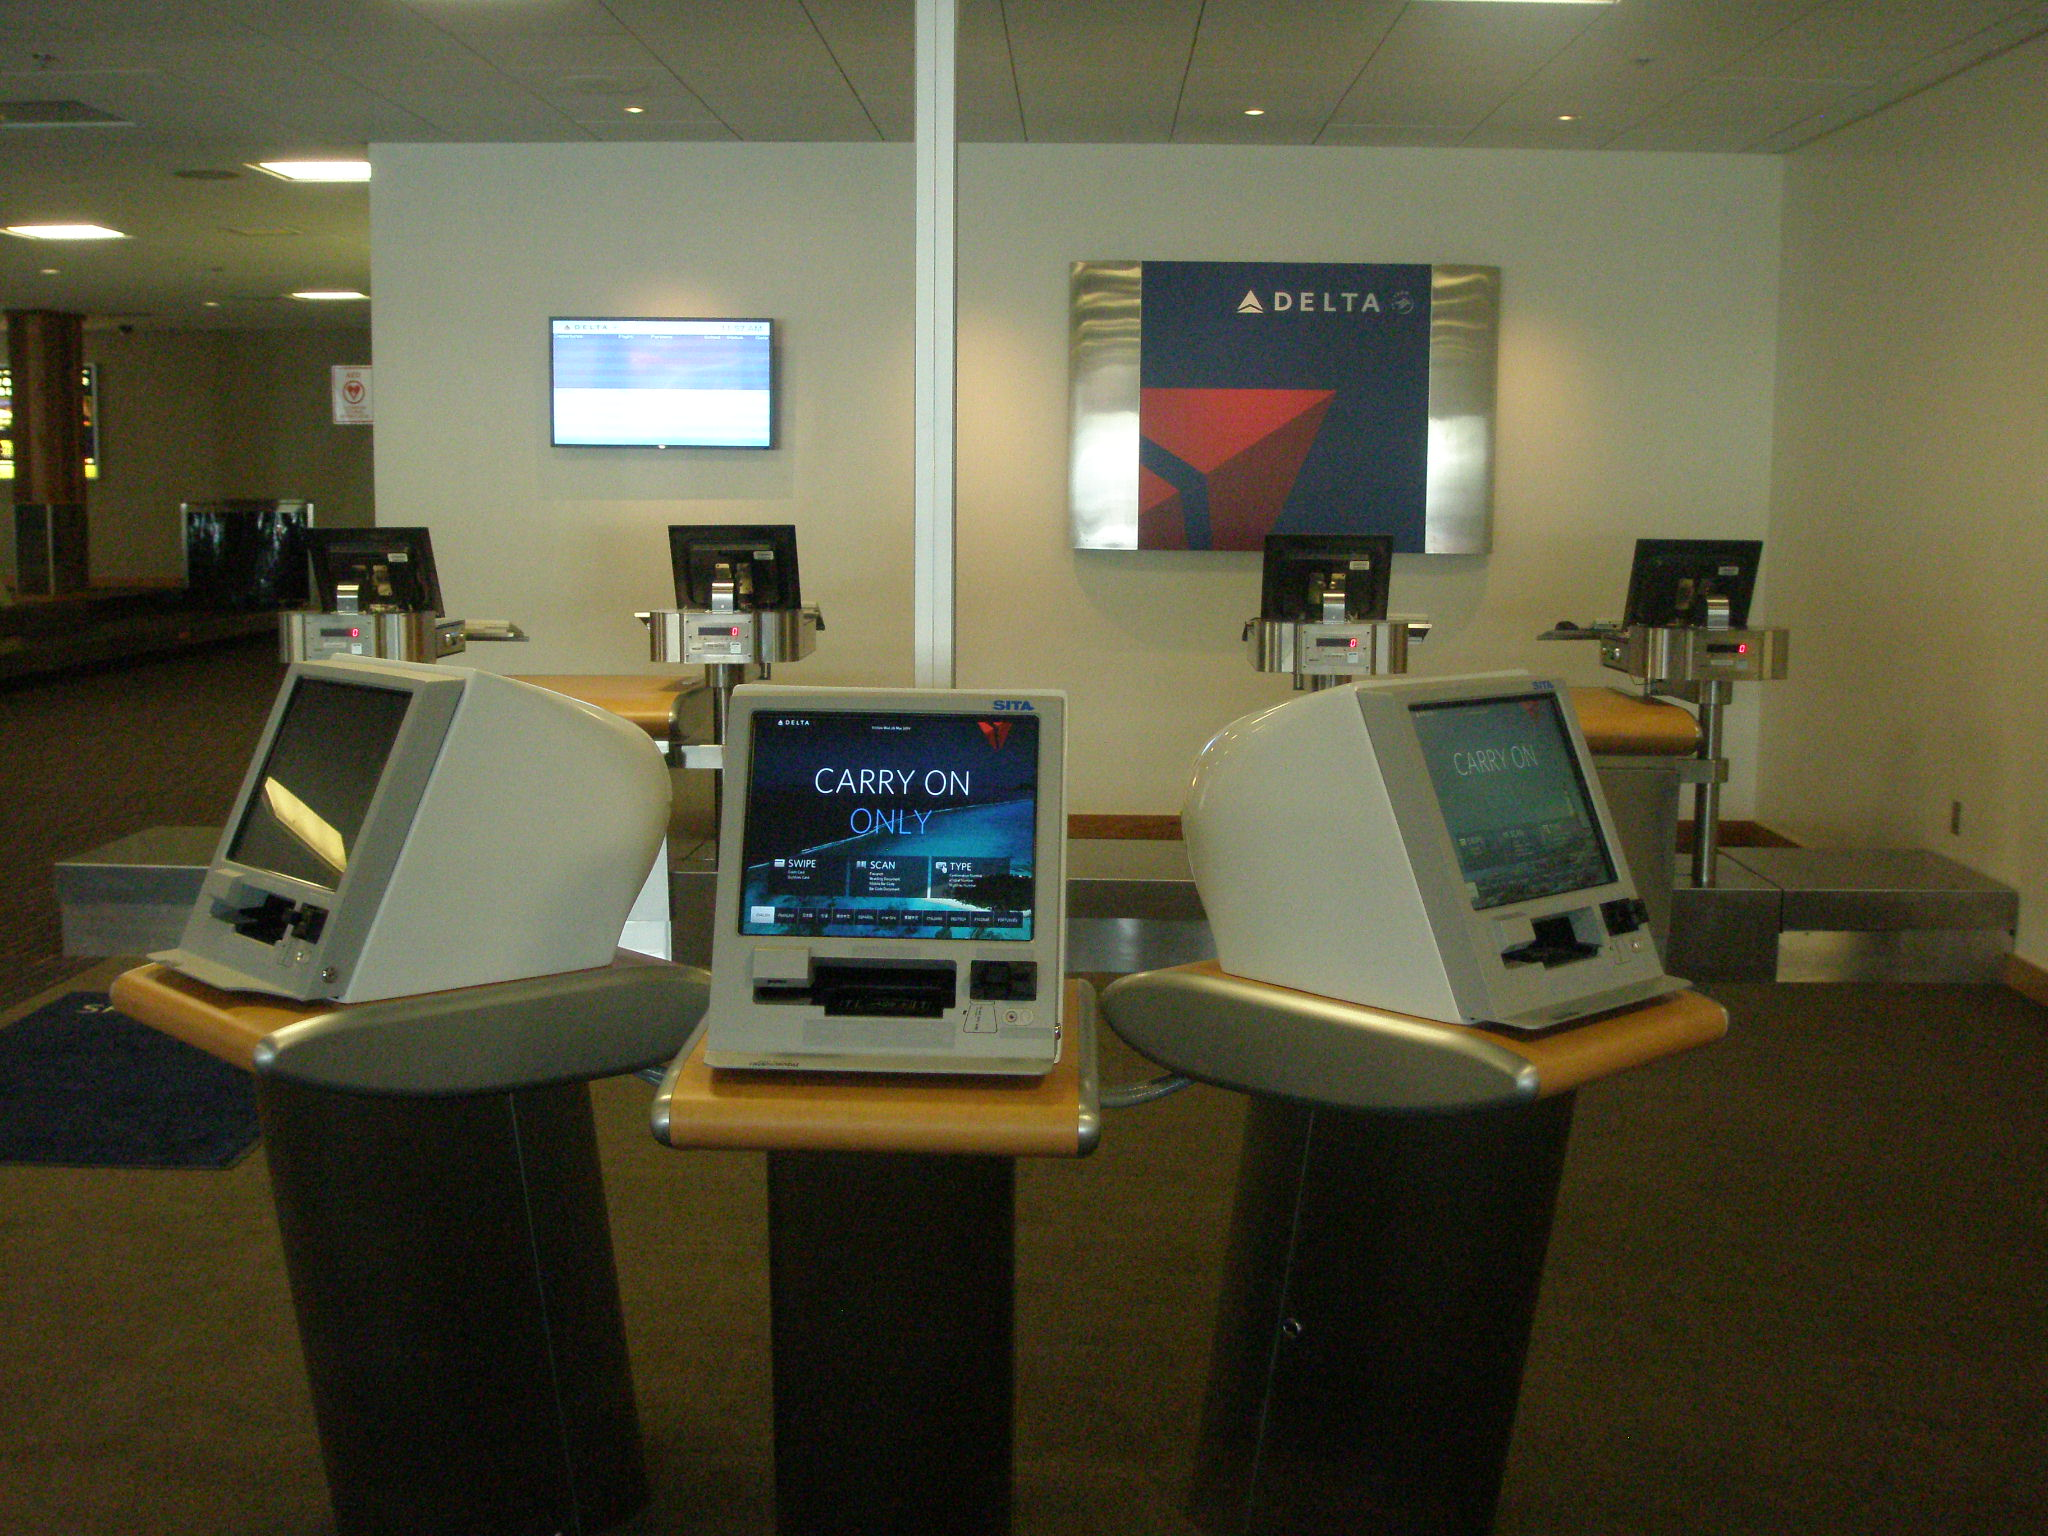 The new Delta check-in counters at Juneau International Airport. Flights start May 29. (Photo courtesy of Juneau International Airport)